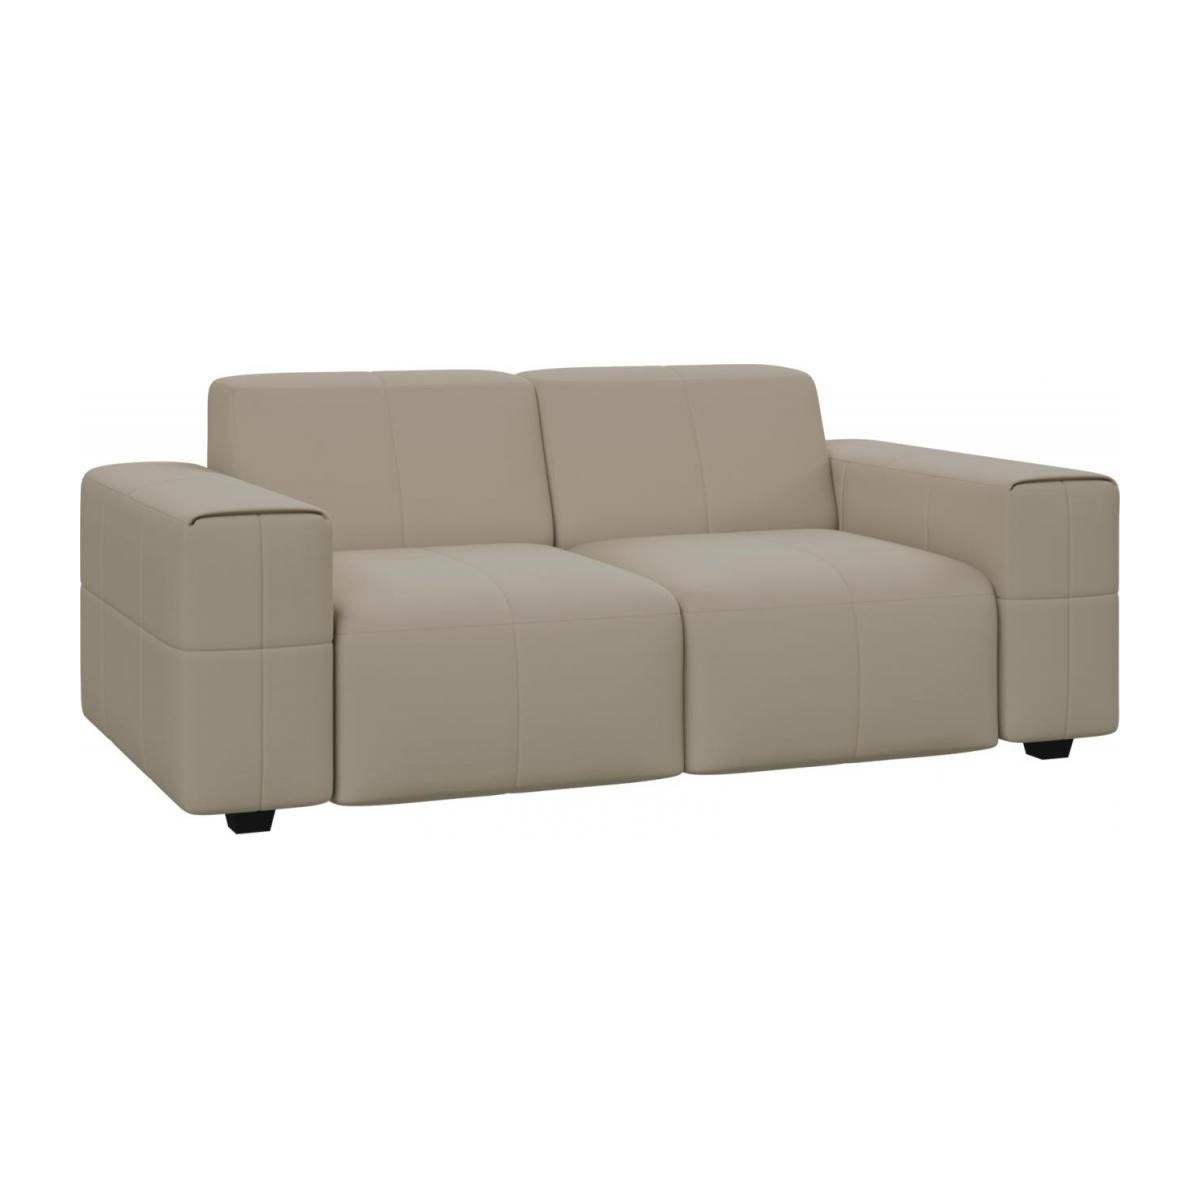 2 seater sofa in Savoy semi-aniline leather, off white n°1